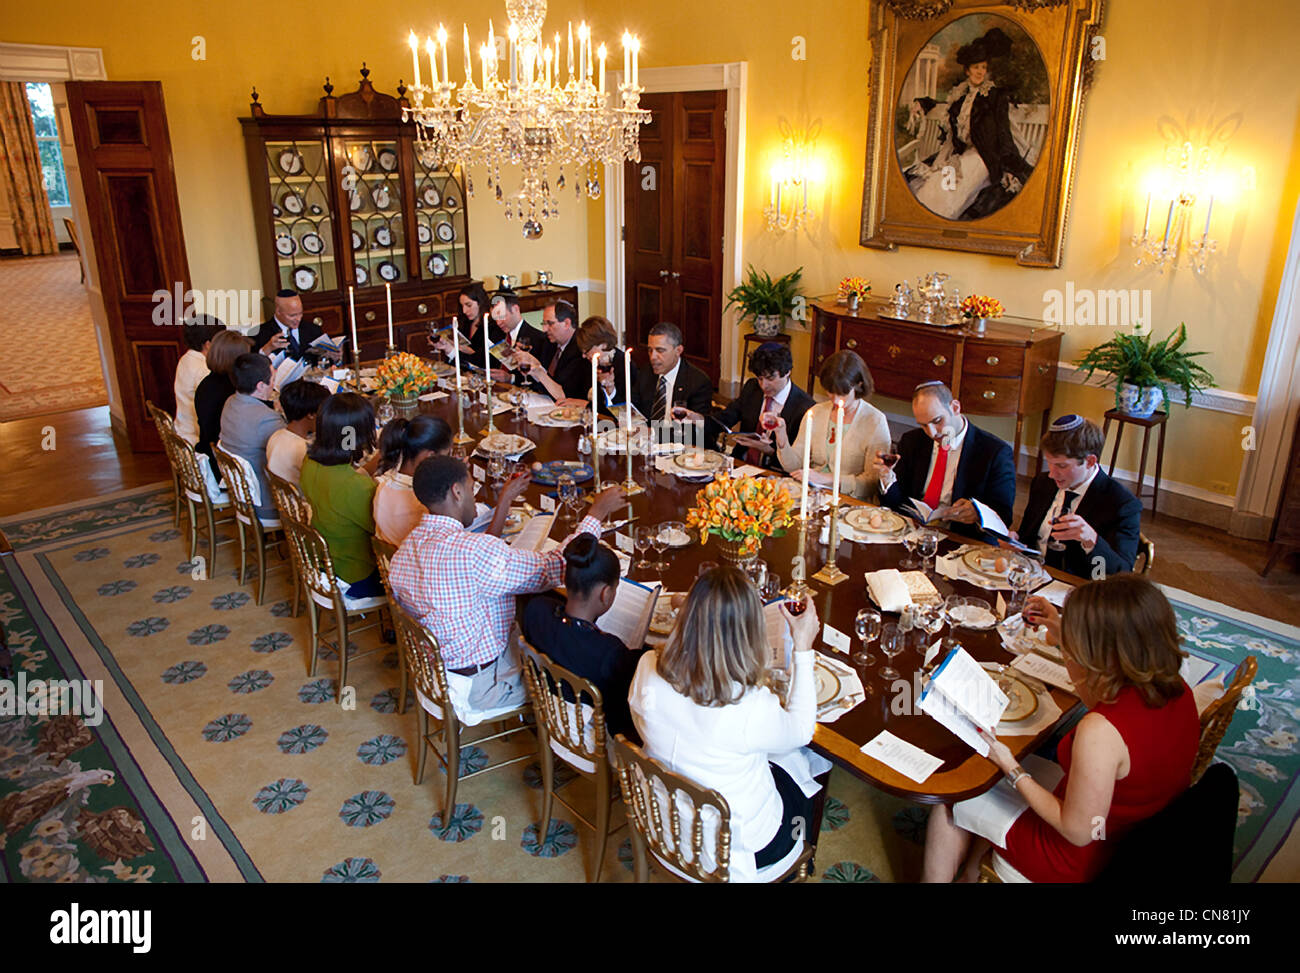 President Barack Obama and First Lady Michelle Obama host a Passover Seder Dinner for family, staff and friends, - Stock Image